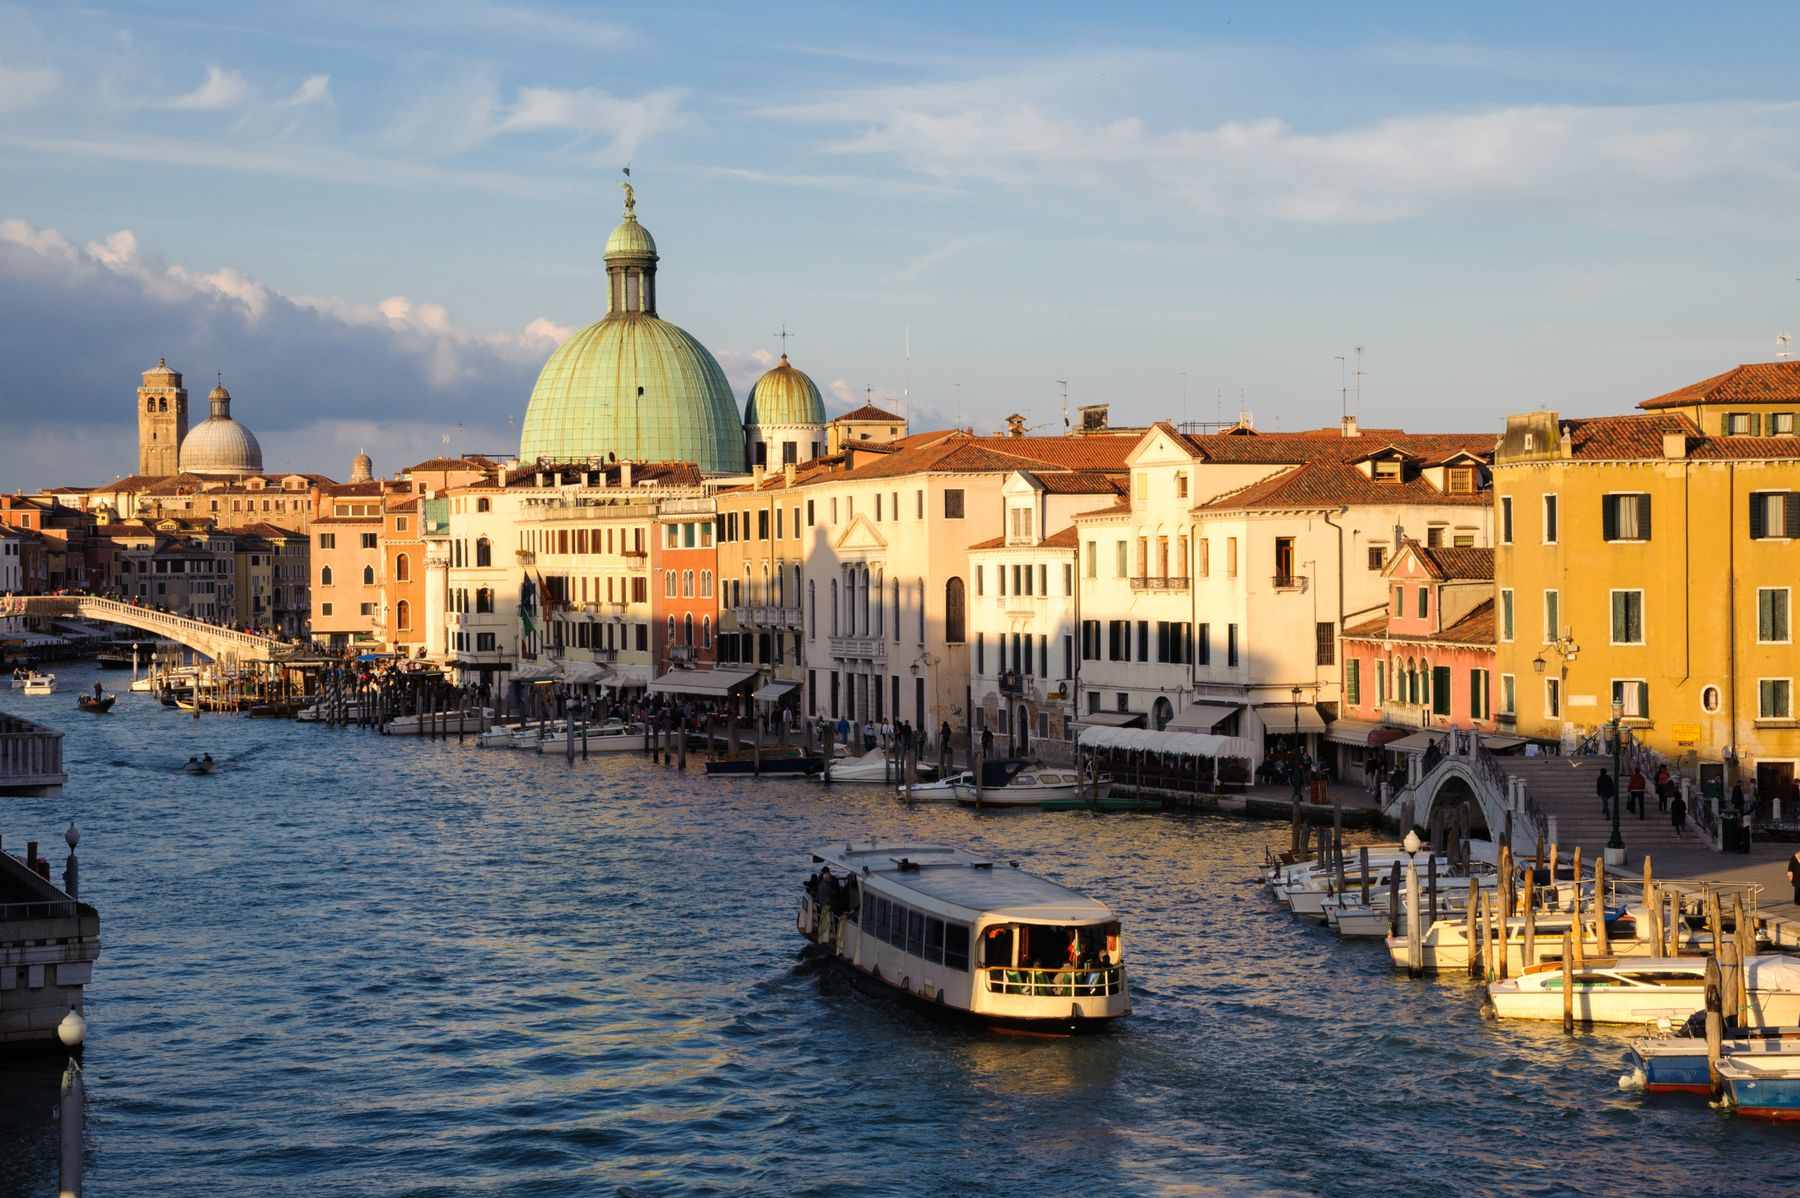 Venice is one of the destinations you can virtually travel to by means of travel shows on Netflix and other platforms